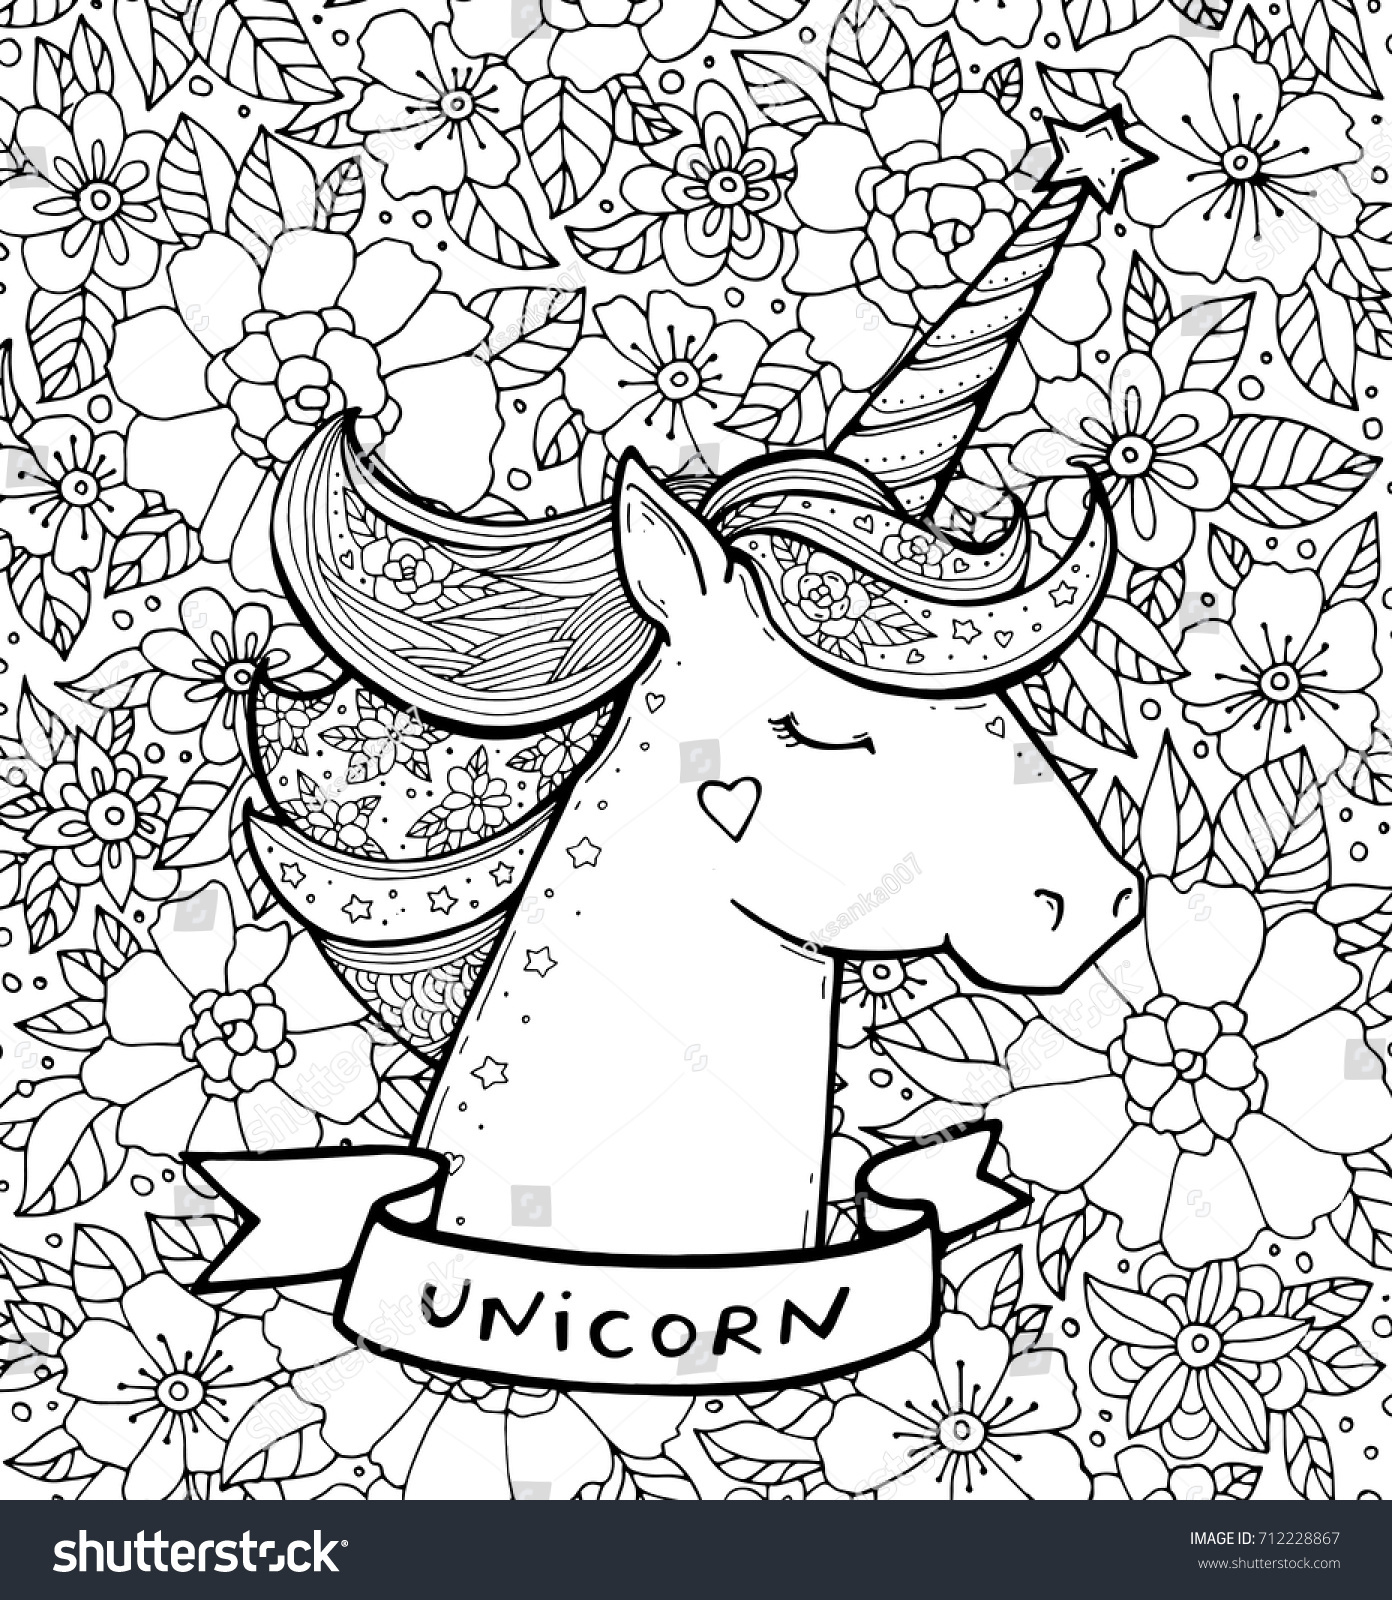 Unicorn Text Flower Pattern Magical Animal Vector Artwork Black And White